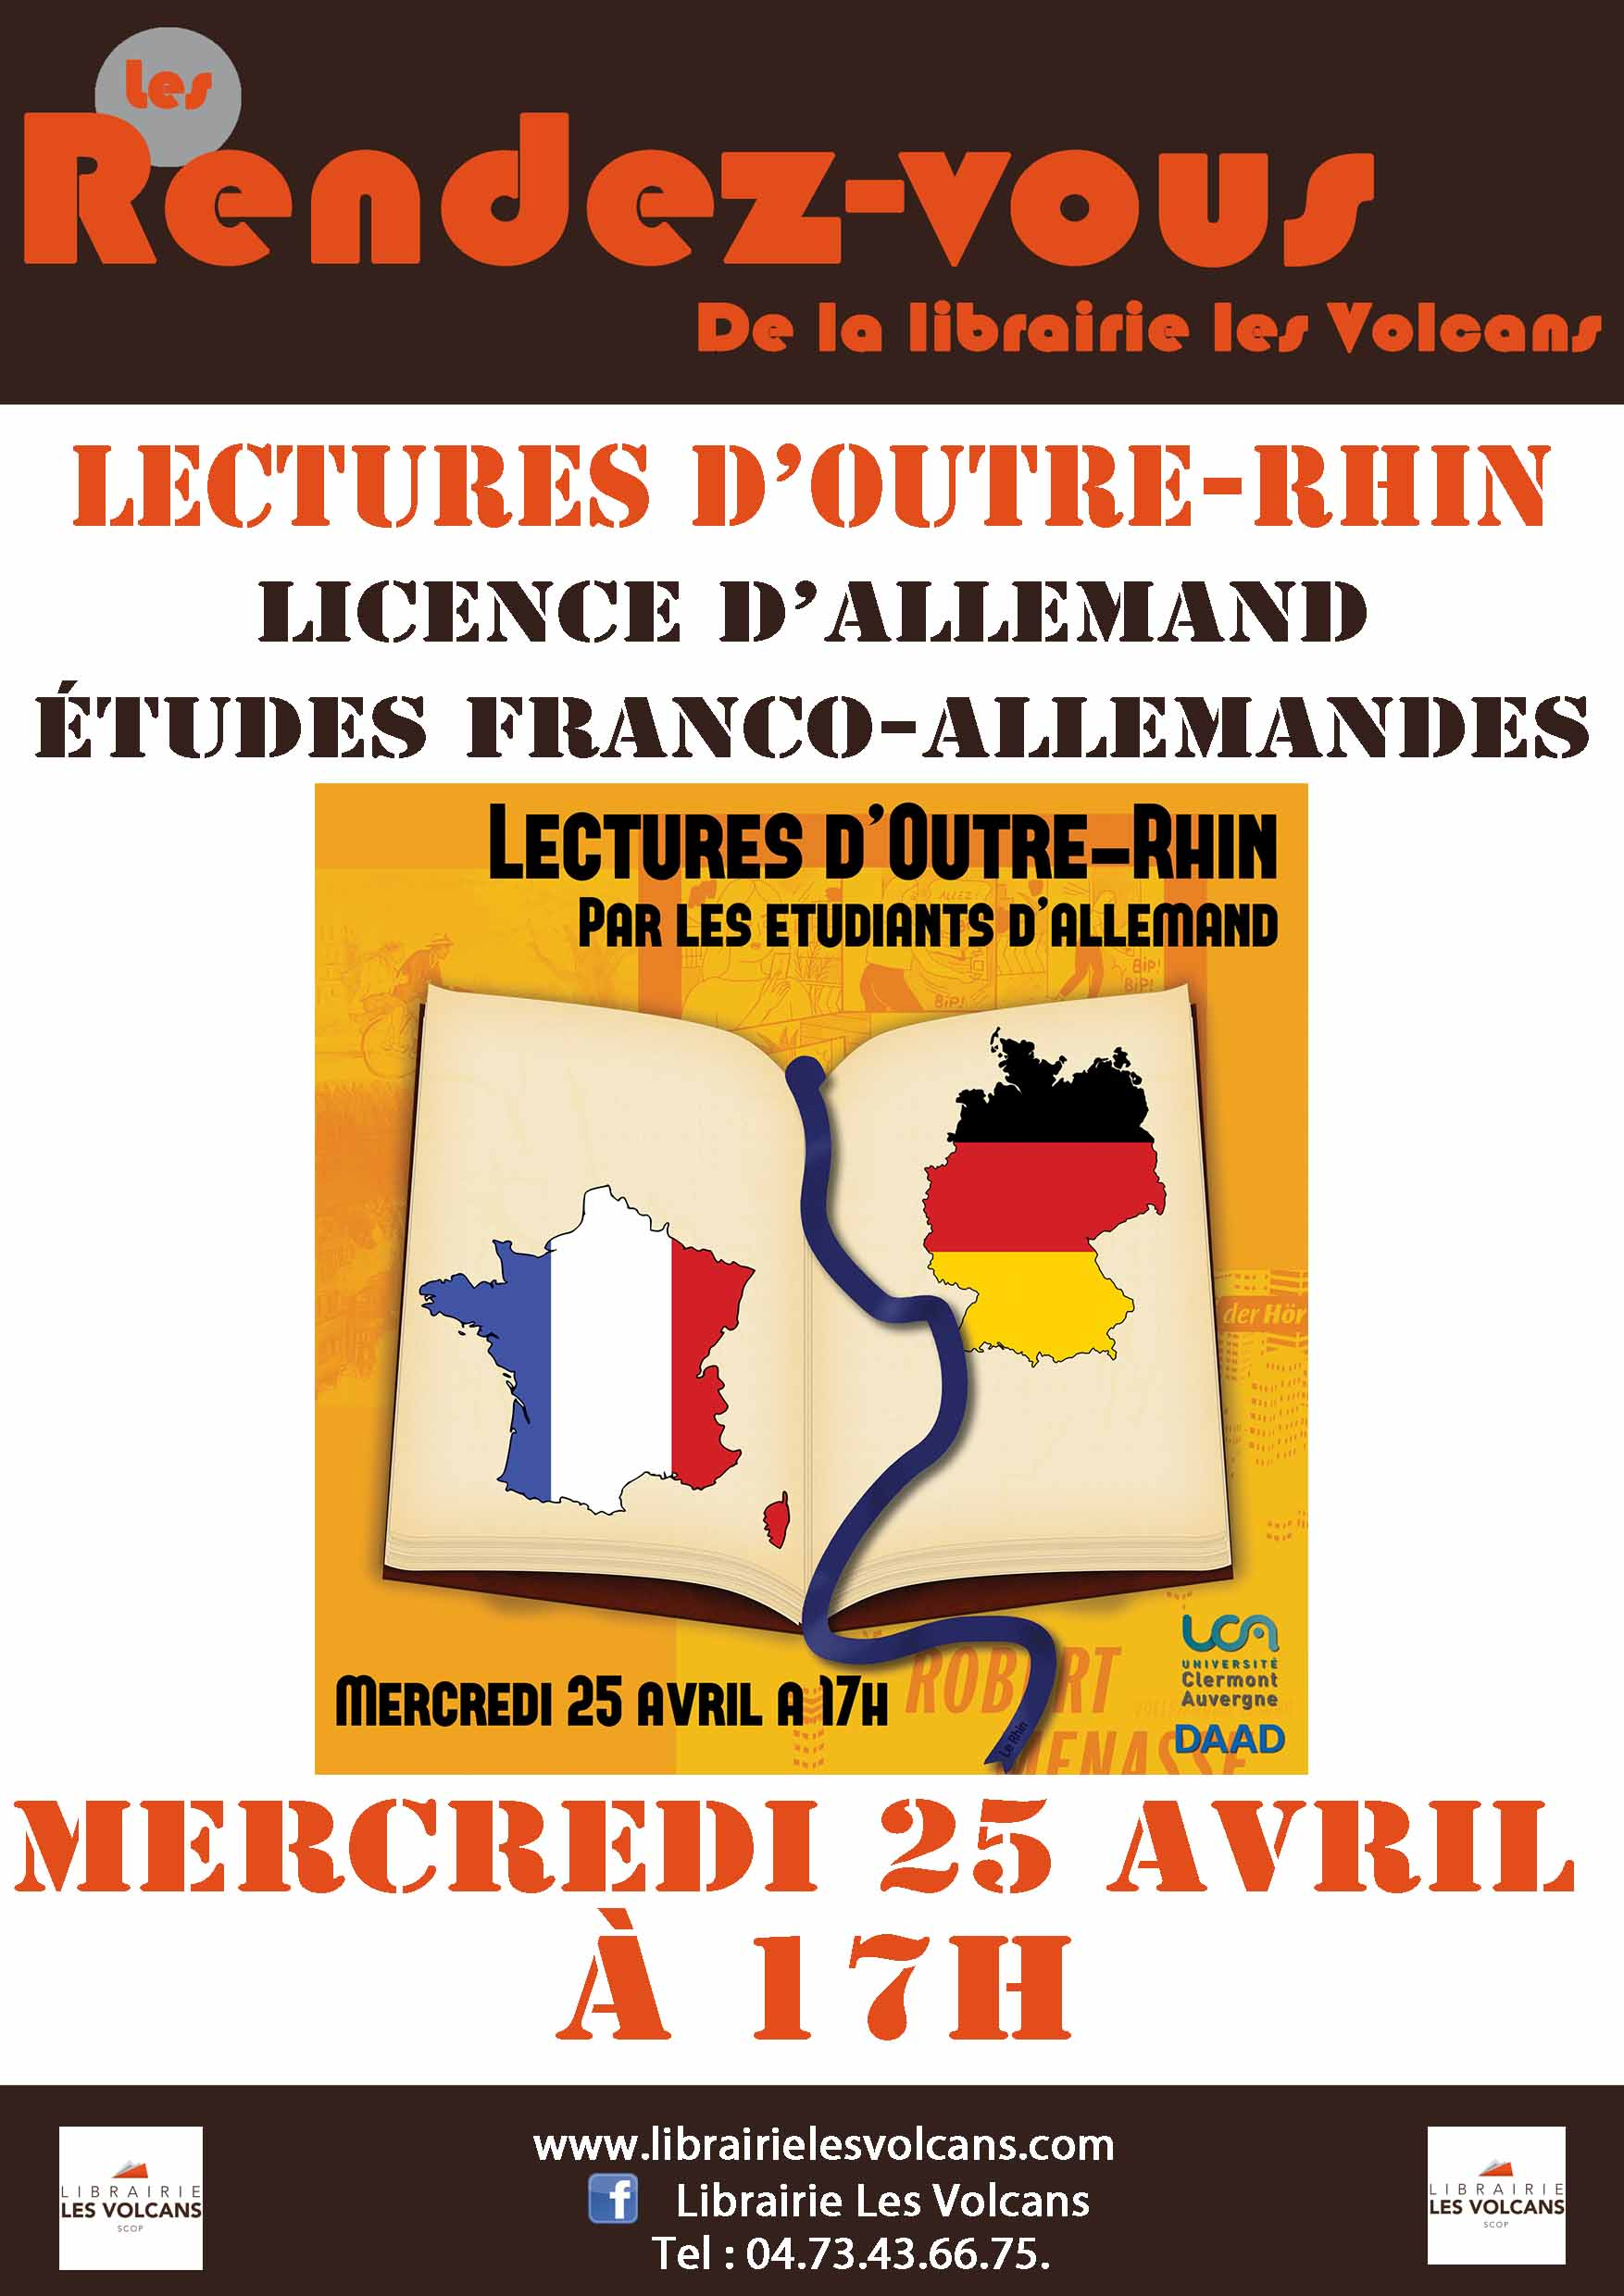 Lectures d'Outre-Rhin